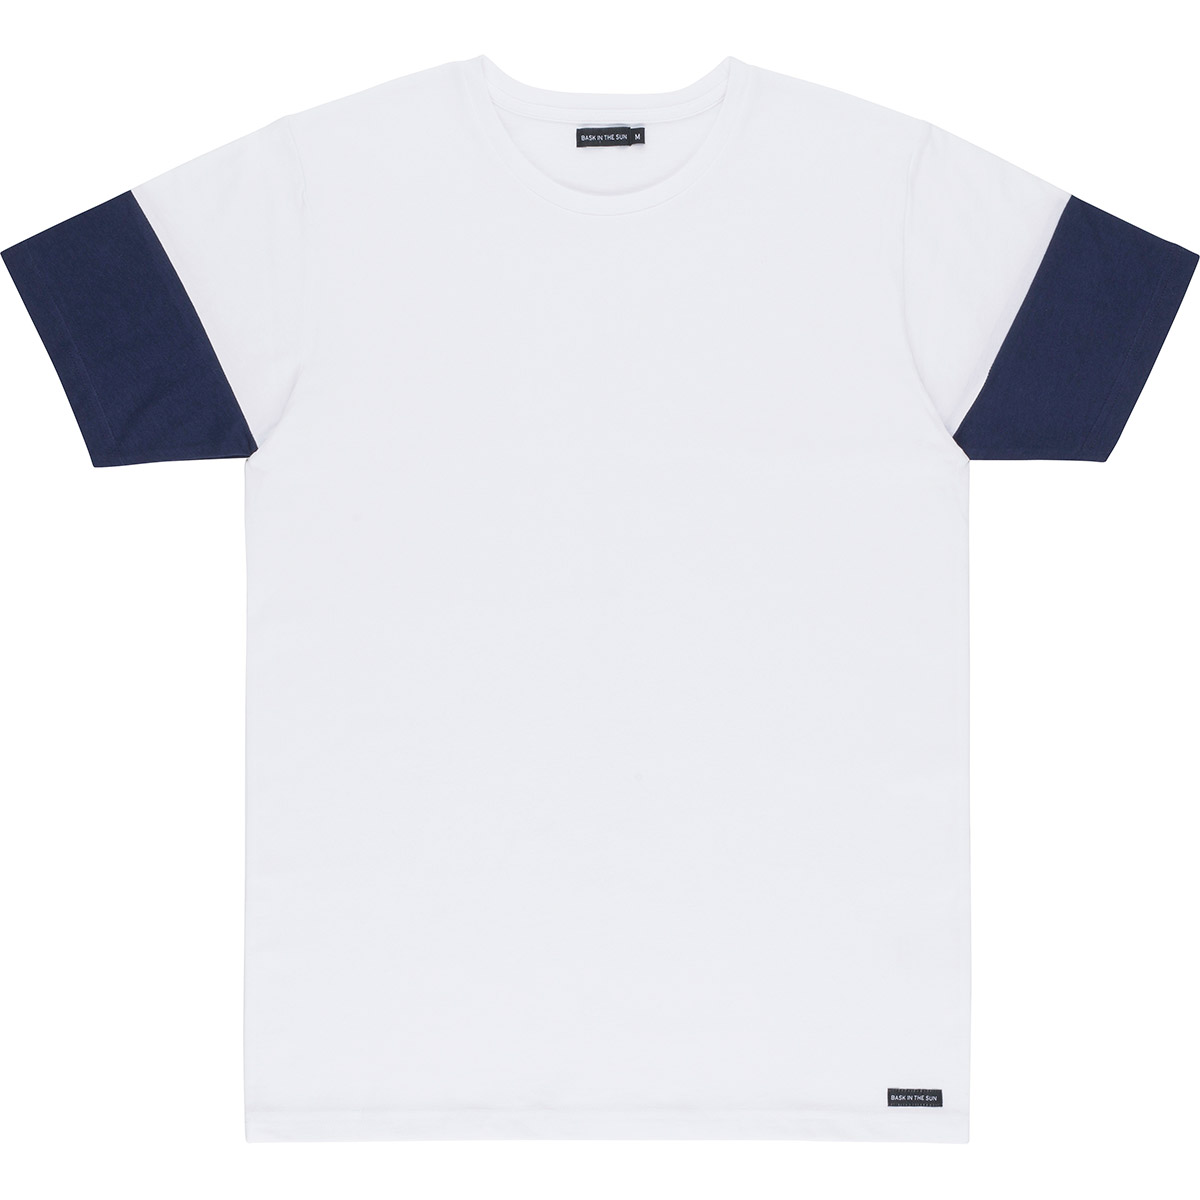 Bask in the Sun - T-shirt en coton bio white kartakan